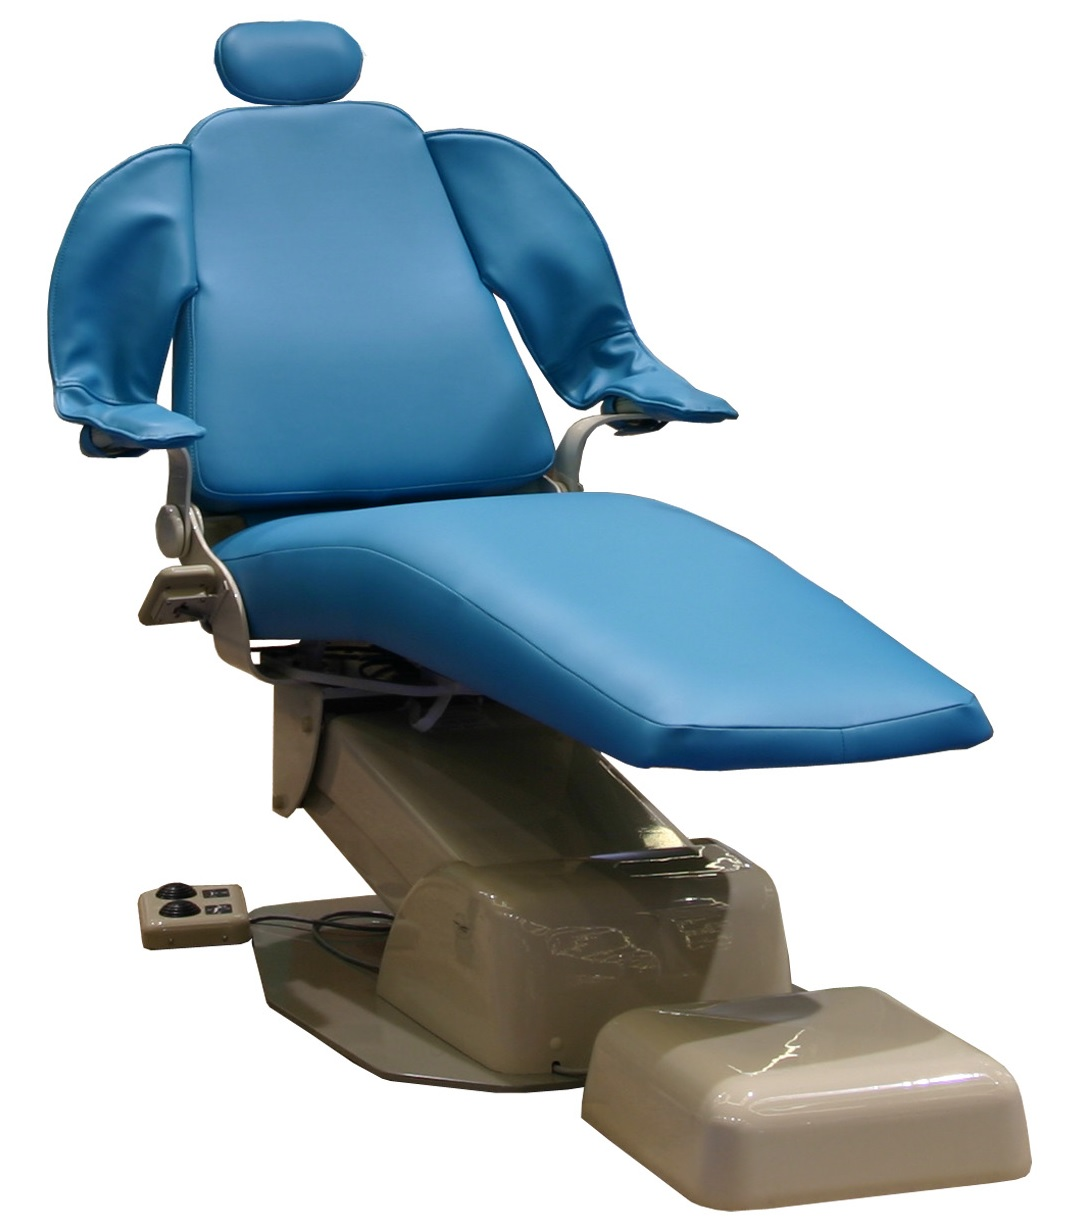 Westar 2001 Electro-mechanical Patient Dental Exam Chair